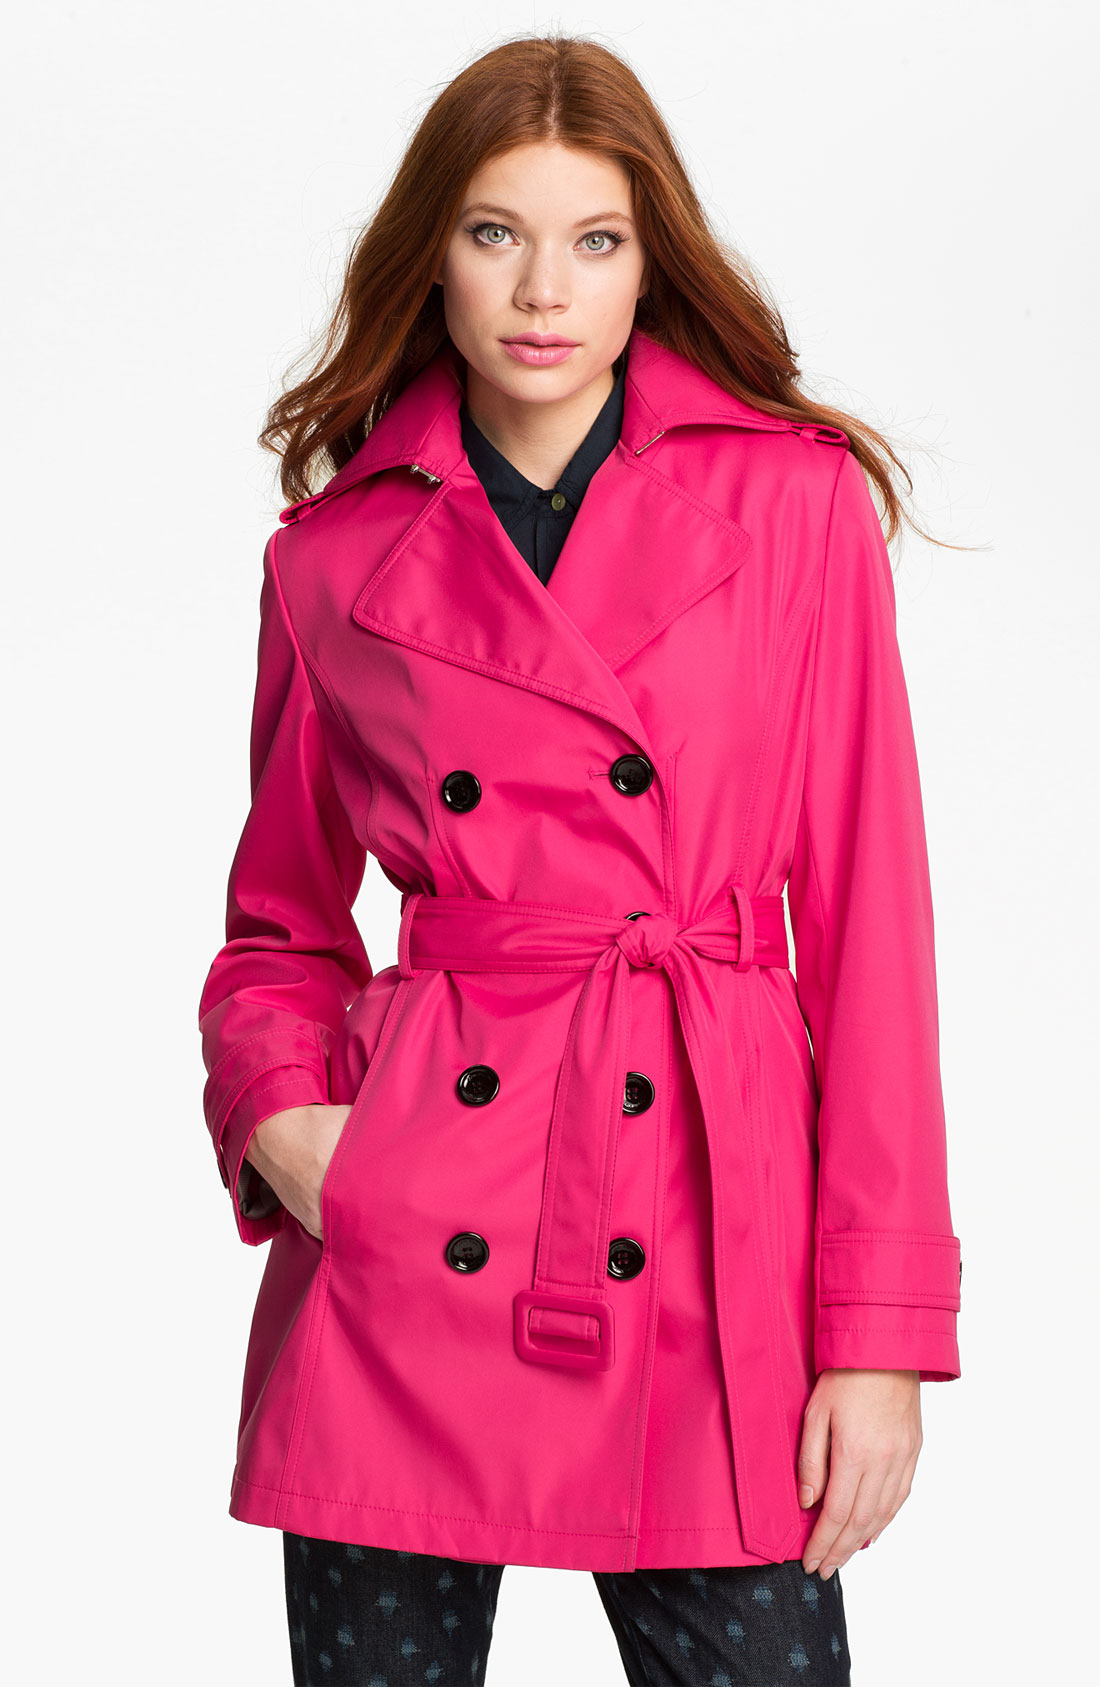 Calvin Klein Trench Coat With Hood Photo Album - Watch Out ...